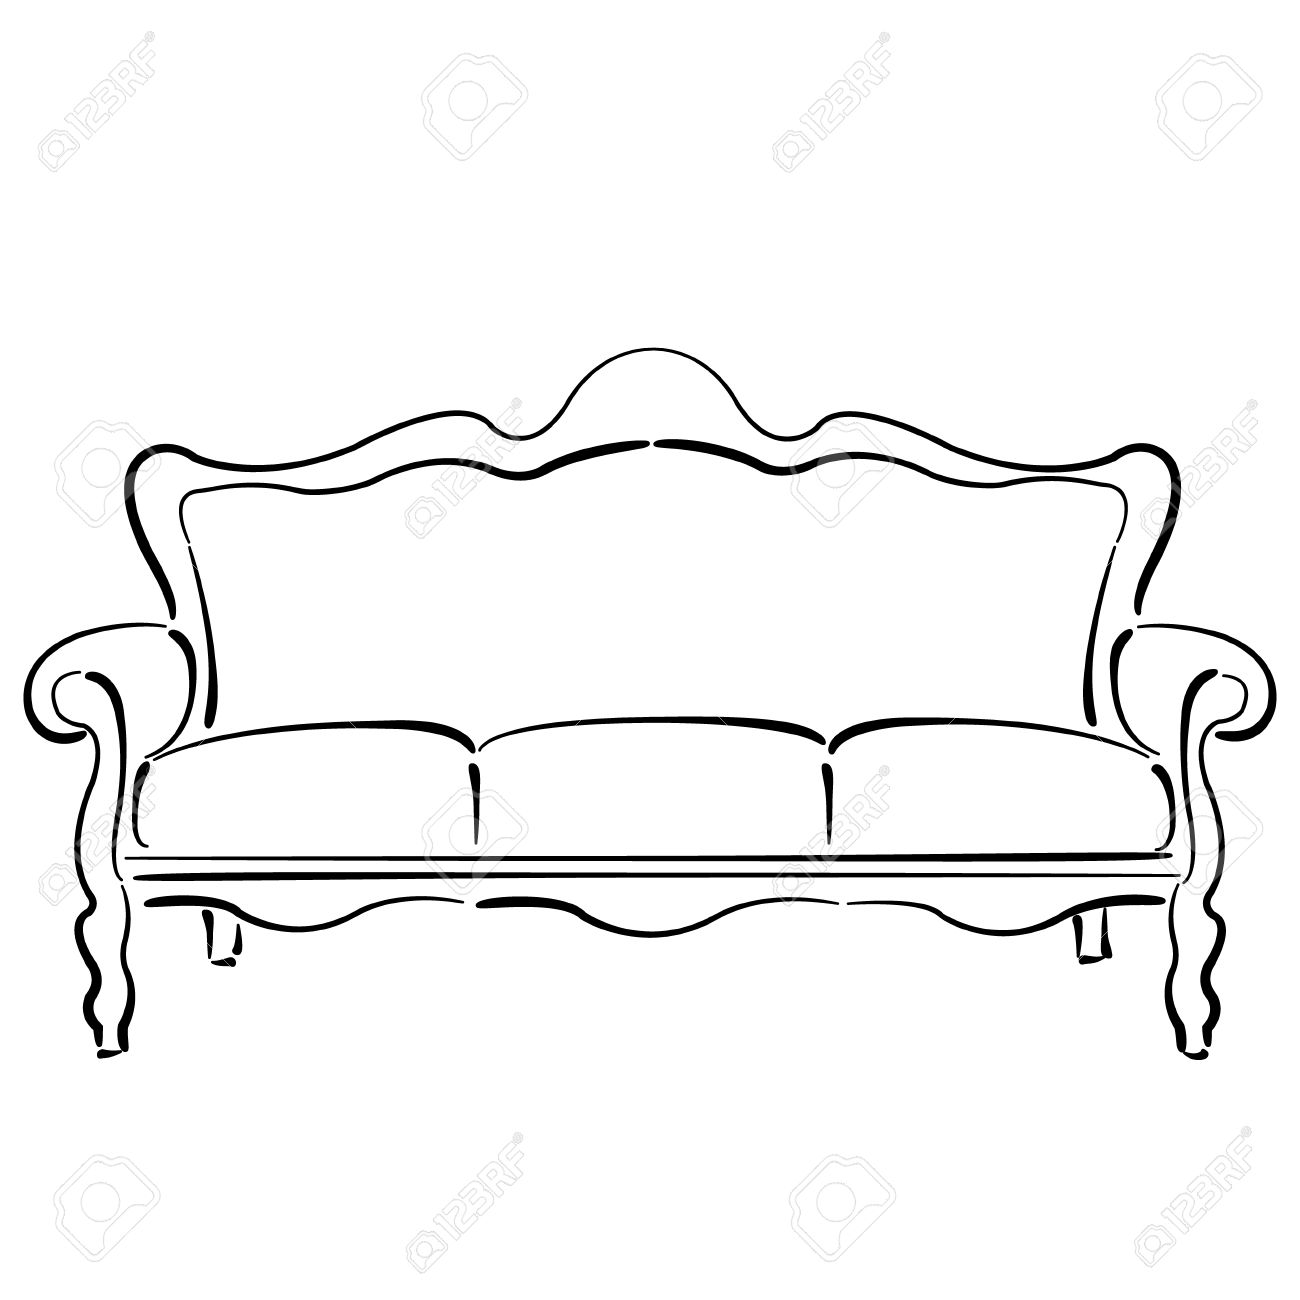 Sketched Sofa Couch Couch Sketch Vector Illustration Royalty Free